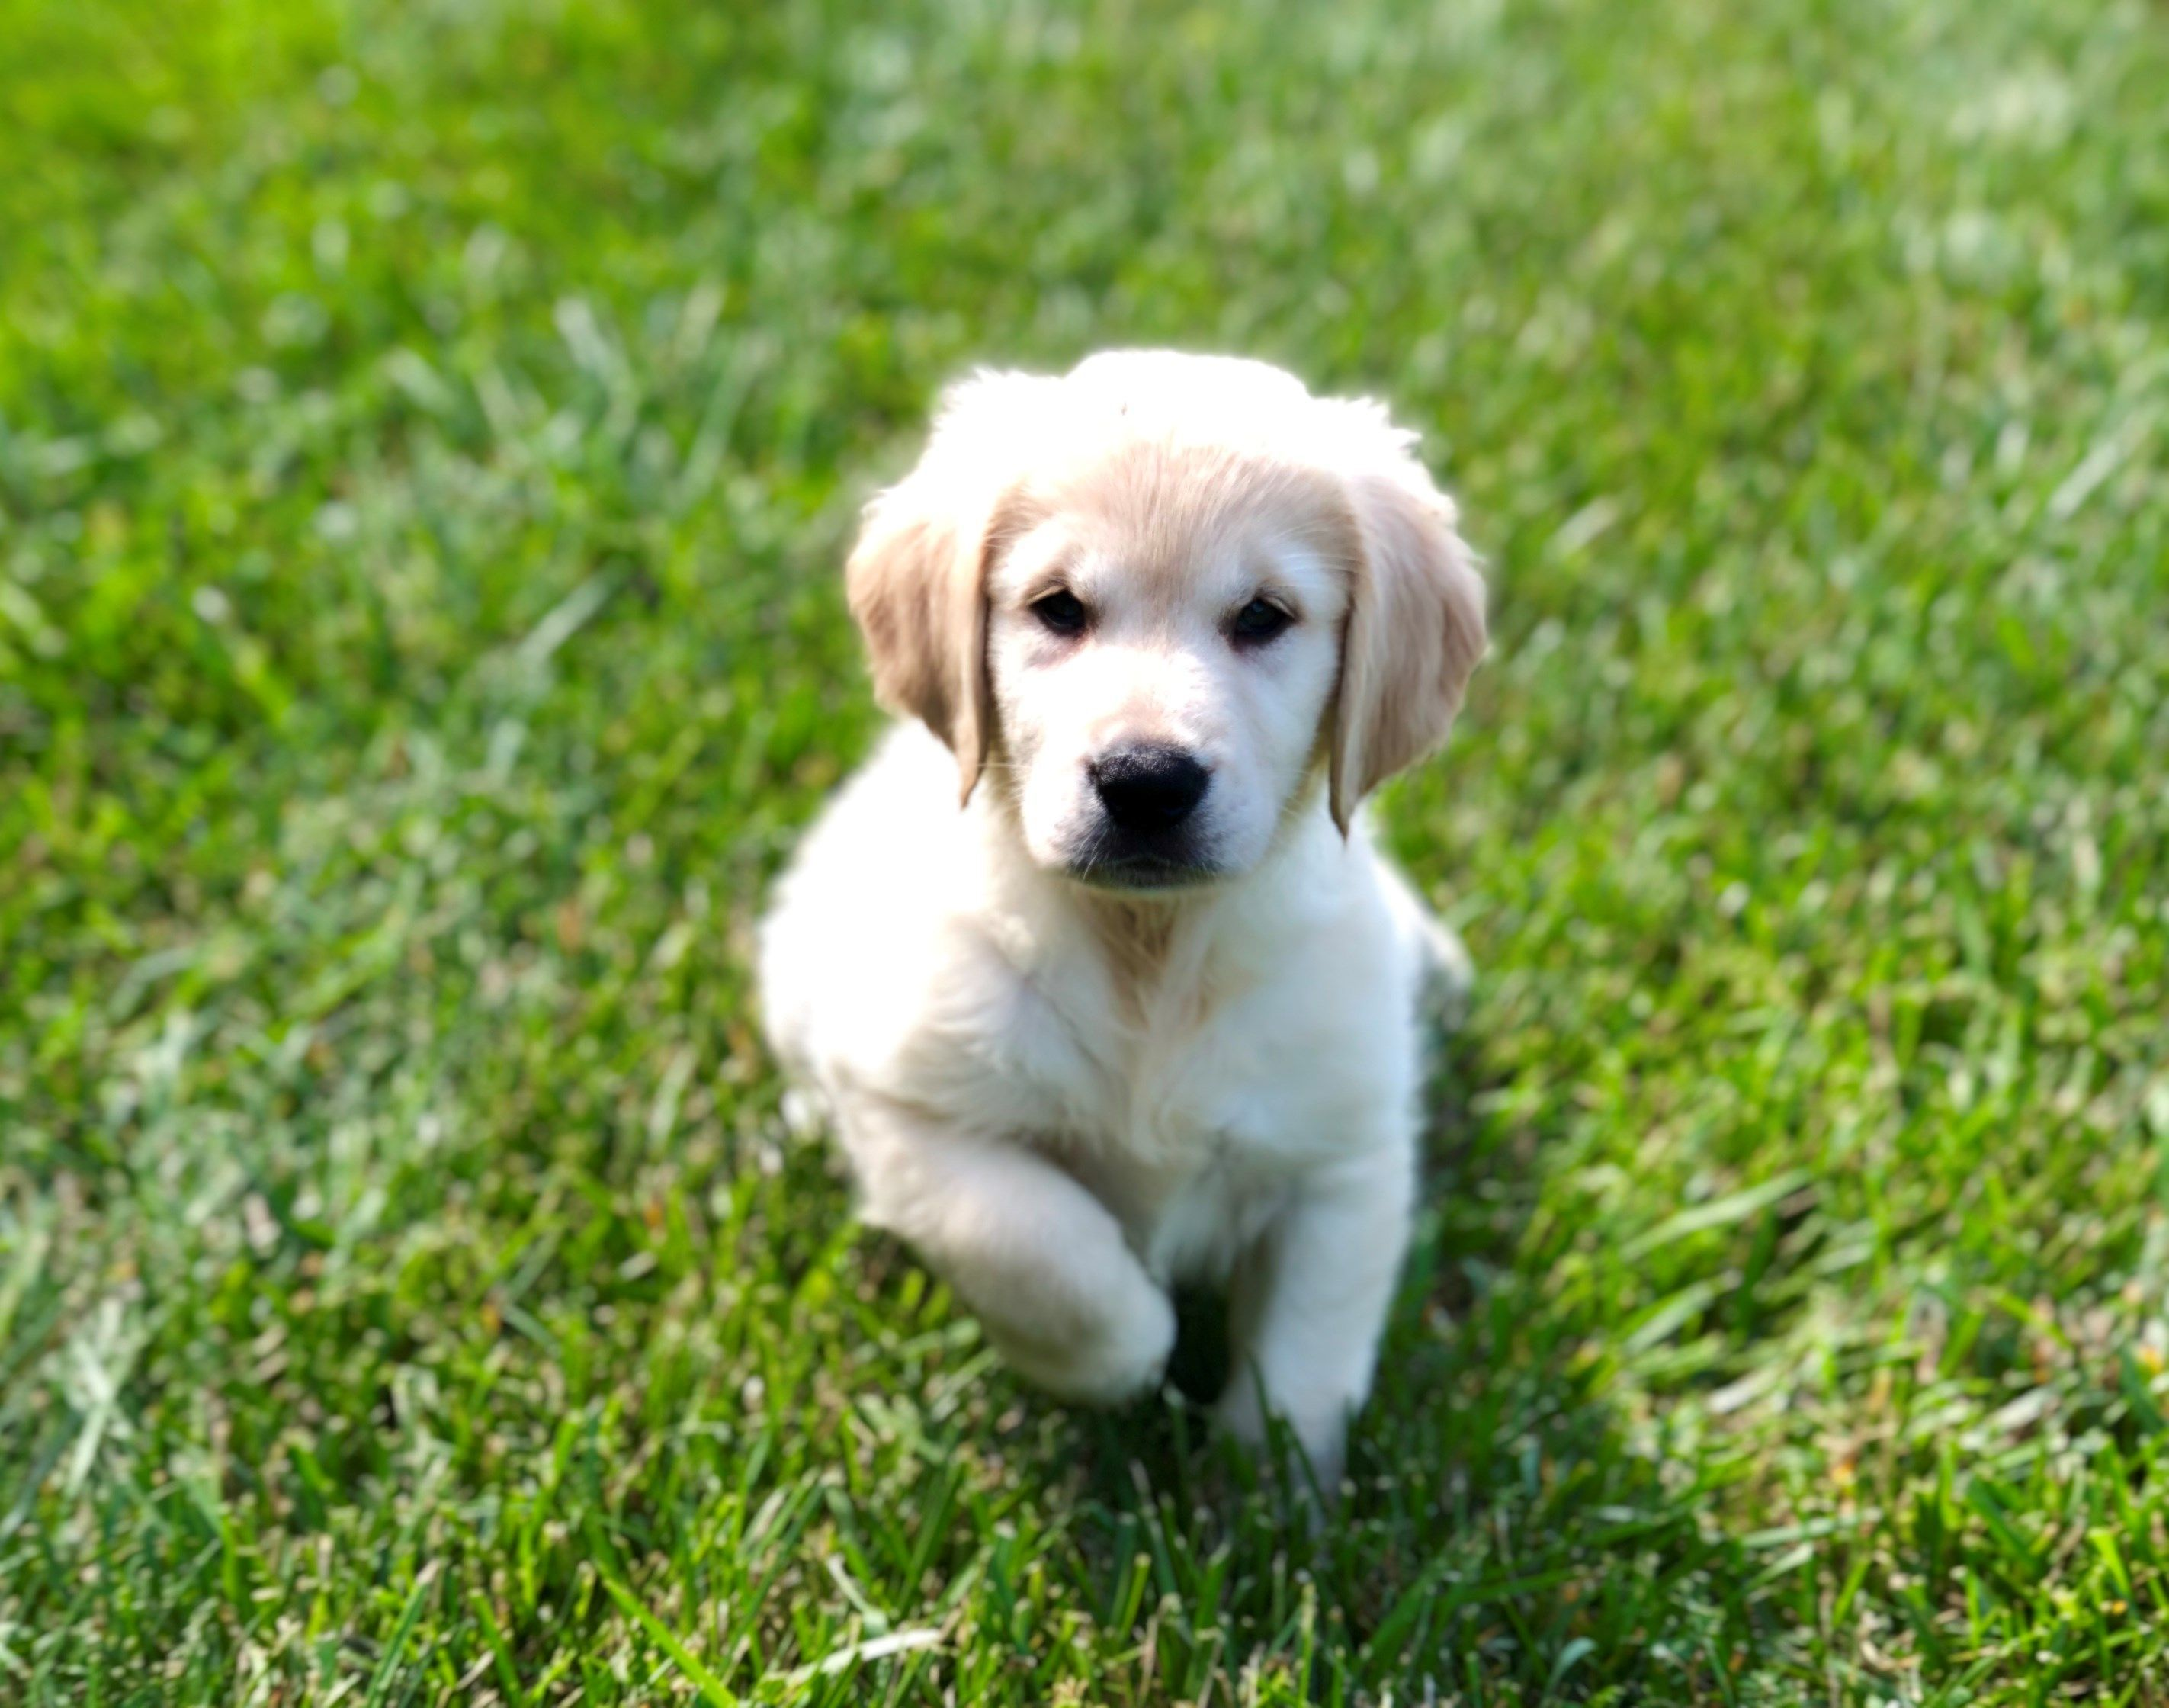 Petland Kansas City Has Golden Retriever Puppies For Sale Check